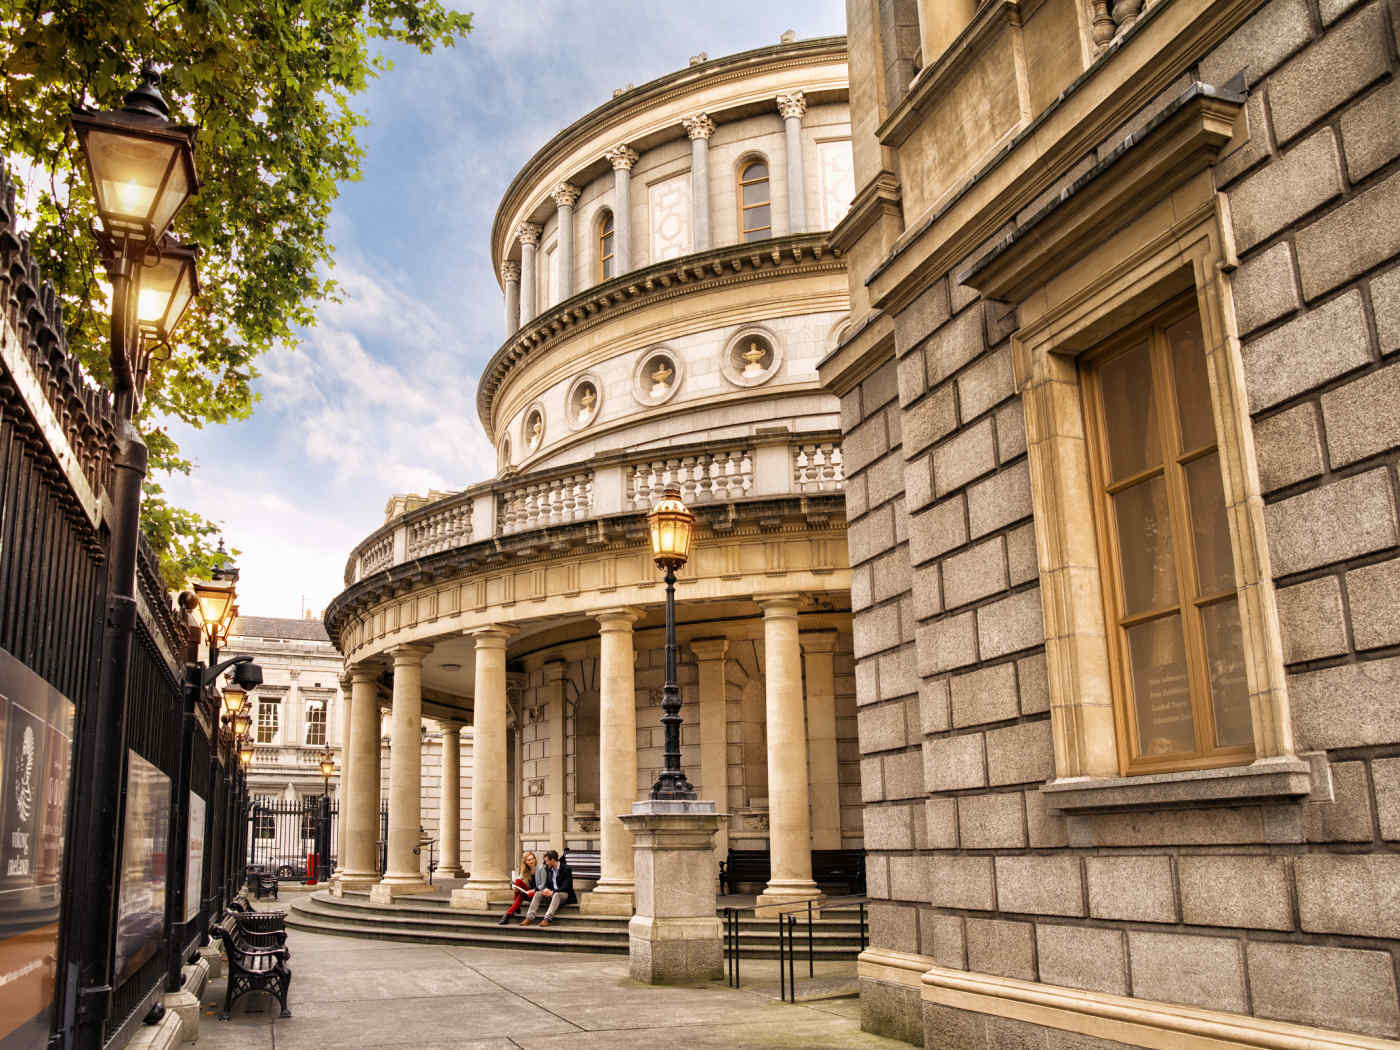 National Gallery in Dublin, Ireland